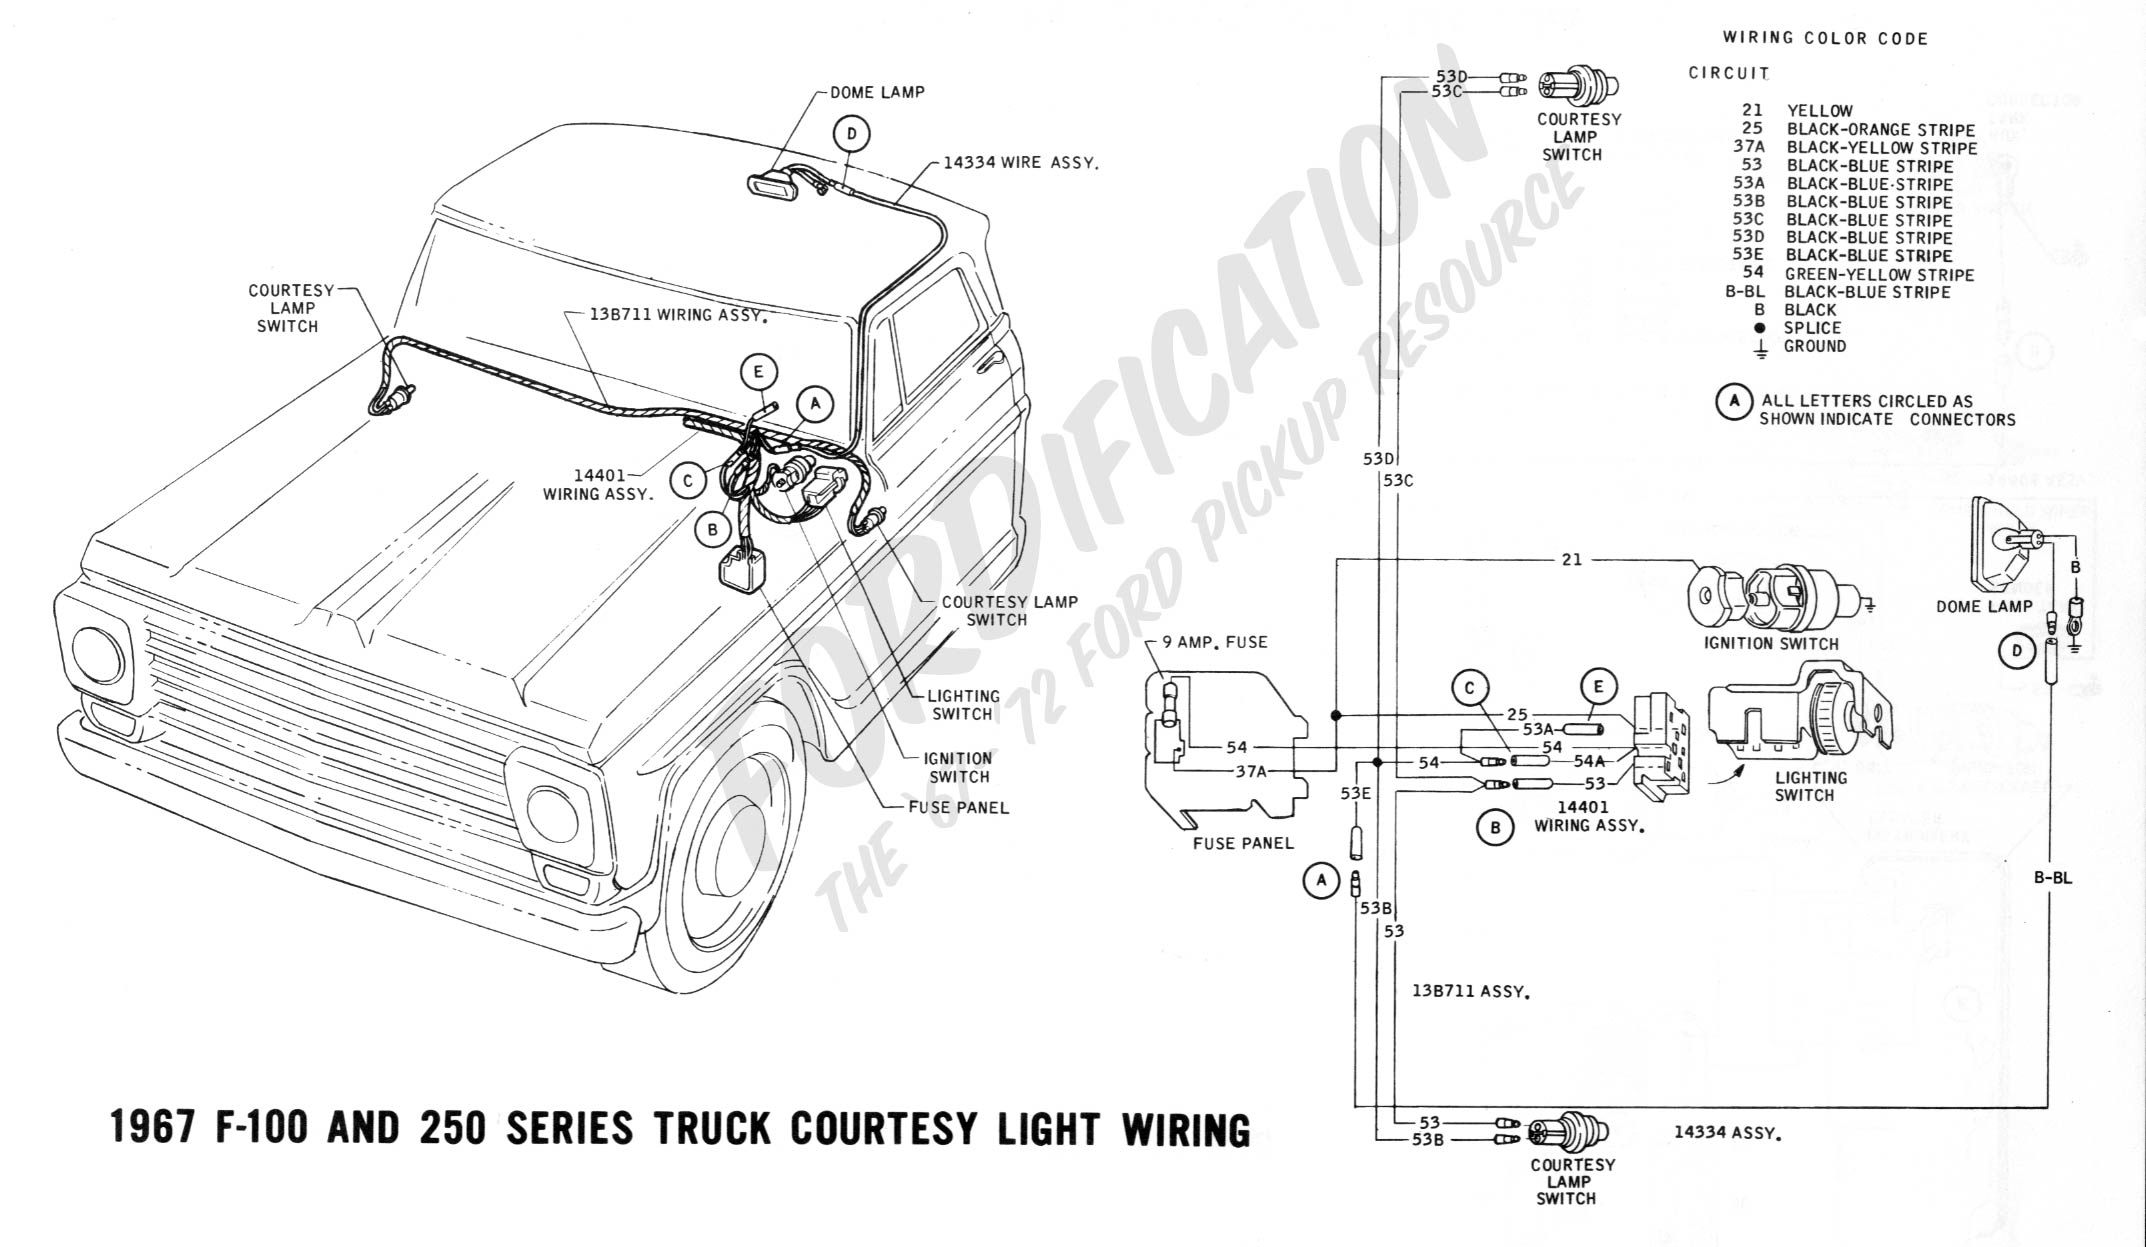 wiring 1967courtesylight wiring in ignition switch in 1966 f100 ford truck enthusiasts forums Ford E 350 Wiring Diagrams at edmiracle.co